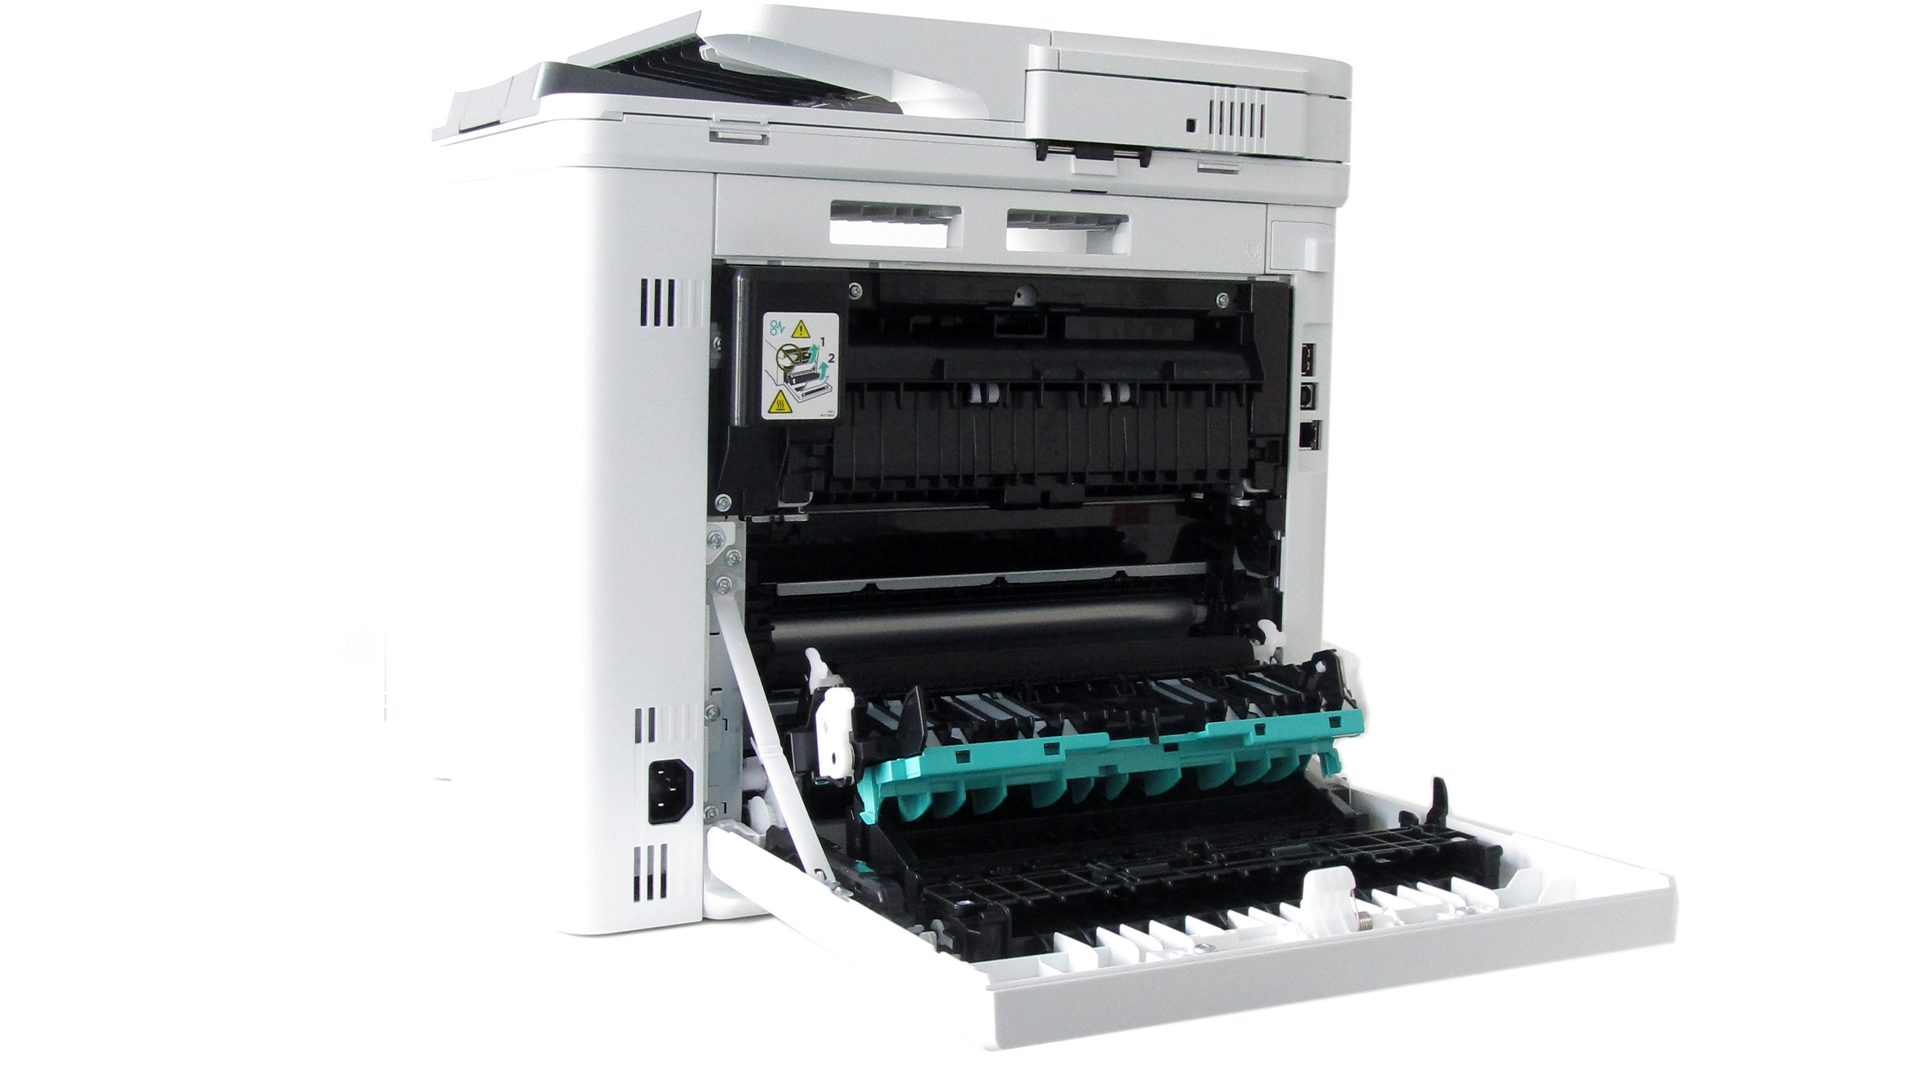 HP-Color-Laser-Jet-Pro-M477dw—Serviceklappe-Rueckseite